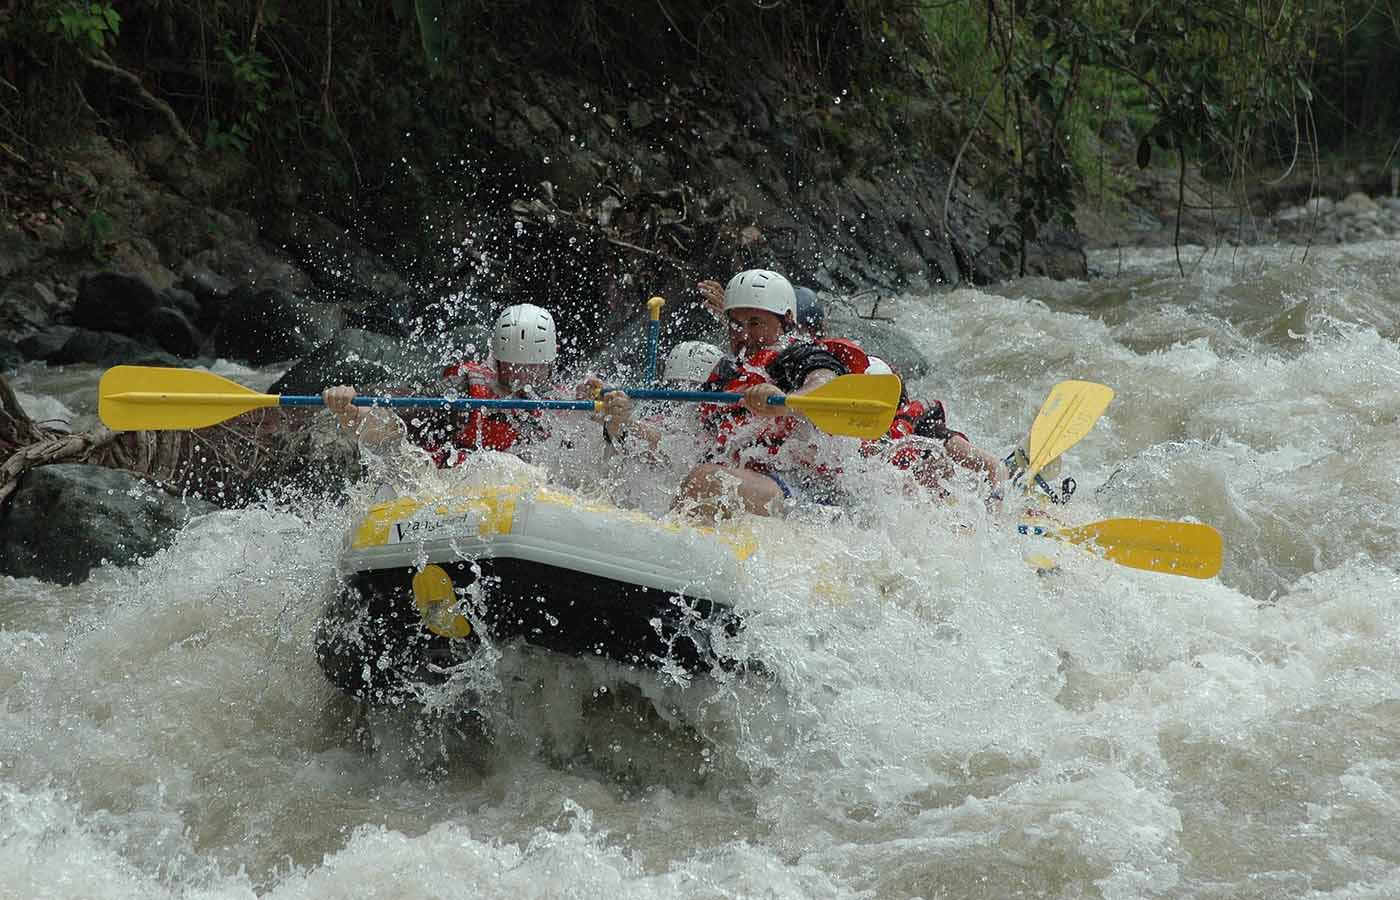 Jondachi - Jondachi is one of the newest rafting opportunities in Ecuador. Before actually getting into the raft and beginning the journey, you will be given the opportunity to explore a hidden river cave and go for a refreshing dip, starting the day out right. After spending some time in the water, you can take a short hike to get to the put-in point and set off on the 38km run for the day.This is a solid class III-IV river and is not a good option for beginners, as many of the maneuvers are technical and require precise navigation in the whitewater between granite boulders. But, if you've had some whitewater experience, then this will be a truly exciting adventure!